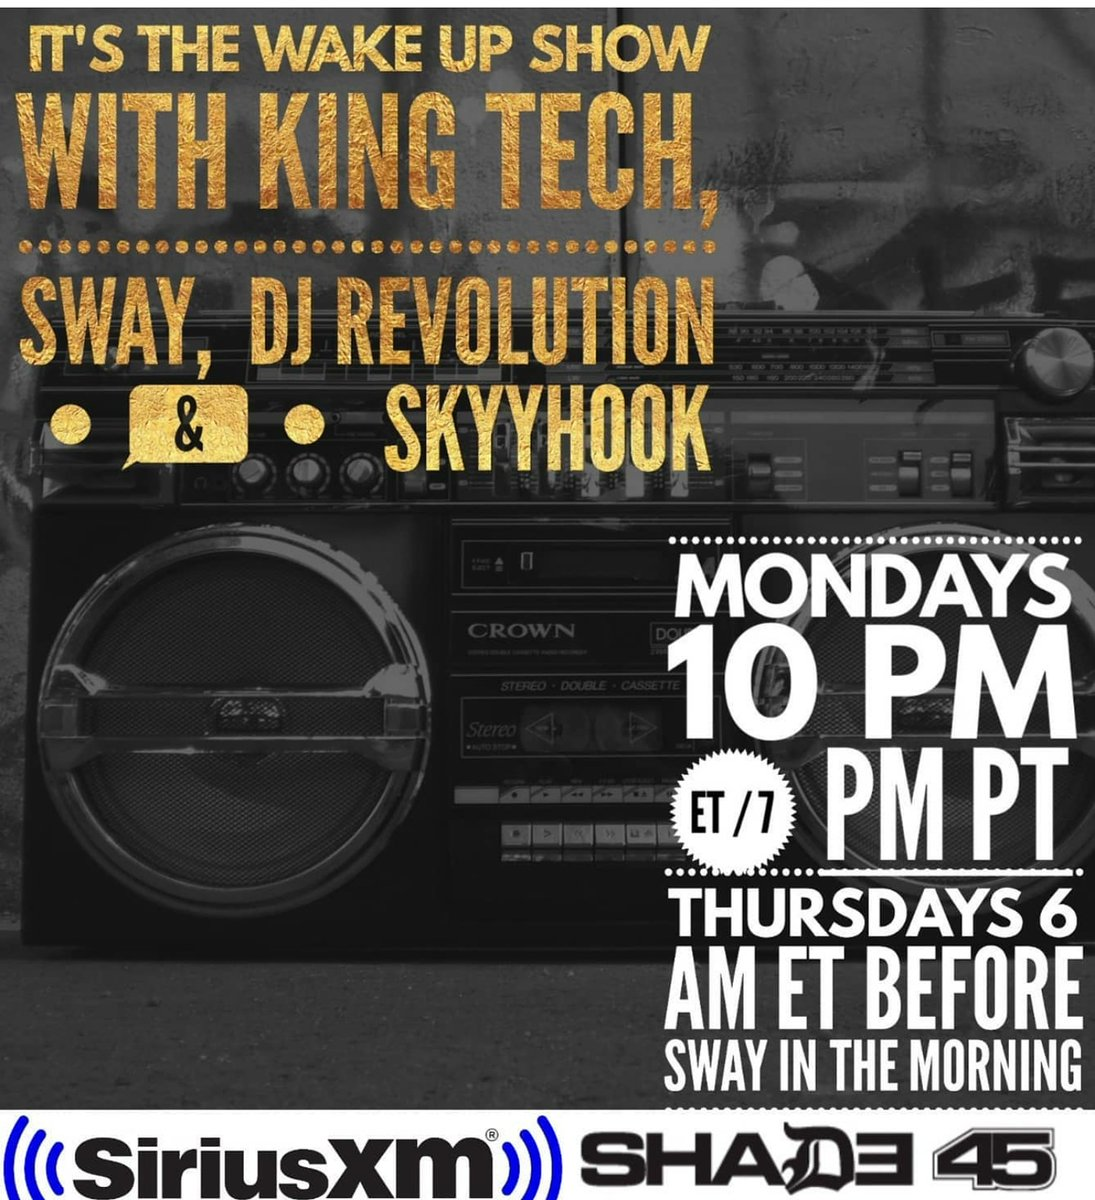 Everybody WAKE UP...It's the @wakeupshow w/ King Tech @RealSway @DJRevolution & @SkyyhookRadio & it's on NOW!!! GET HERE!! Only on @SIRIUSXM @Shade45 #MumbleFreeRapRadio #HipHopLife #HIPHOPCULTURE #DJLife #DJCulture #Radio #Shade45